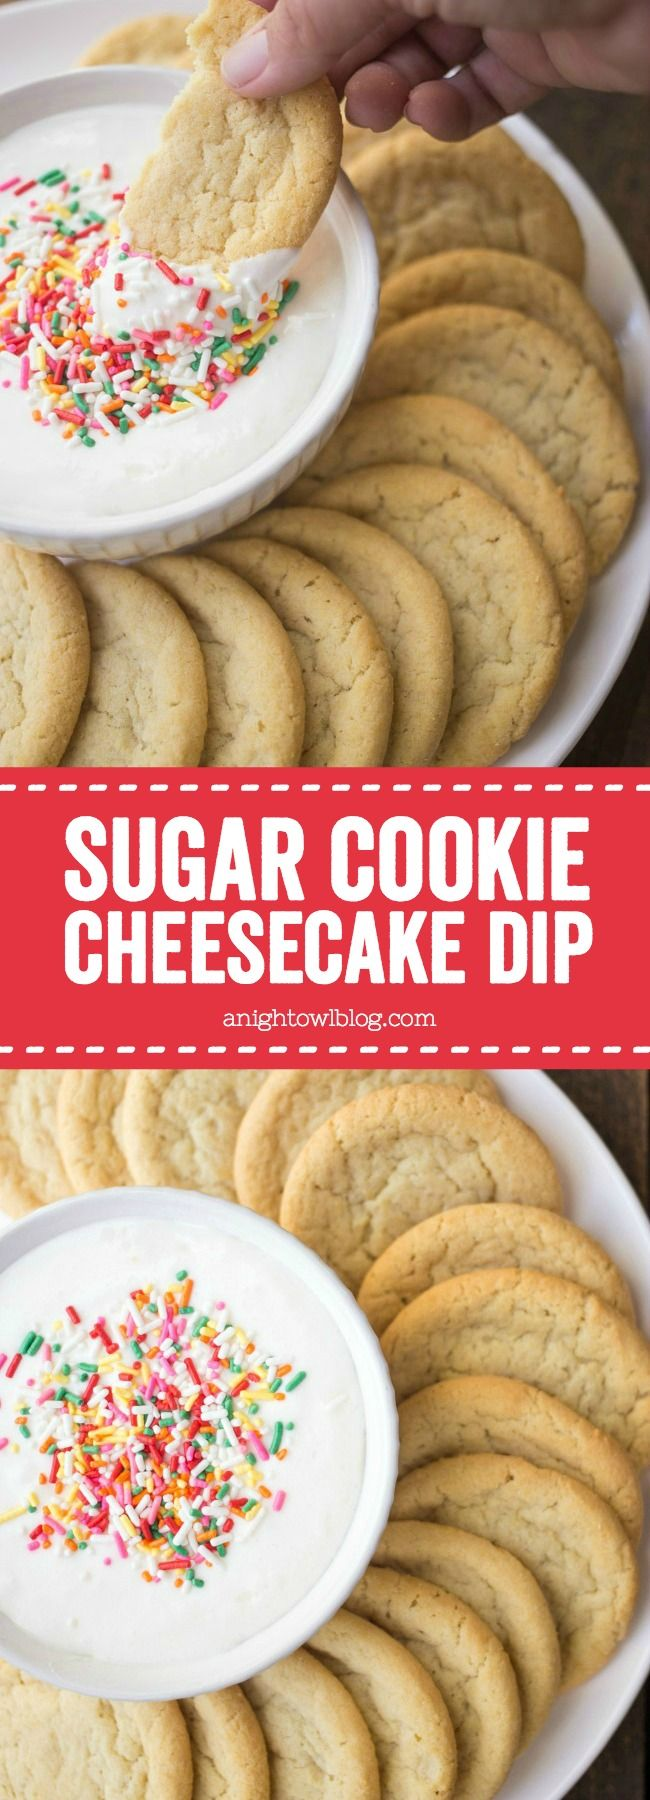 This Sugar Cookie Cheesecake Dip is delicious, fun and easy - great to serve at parties!